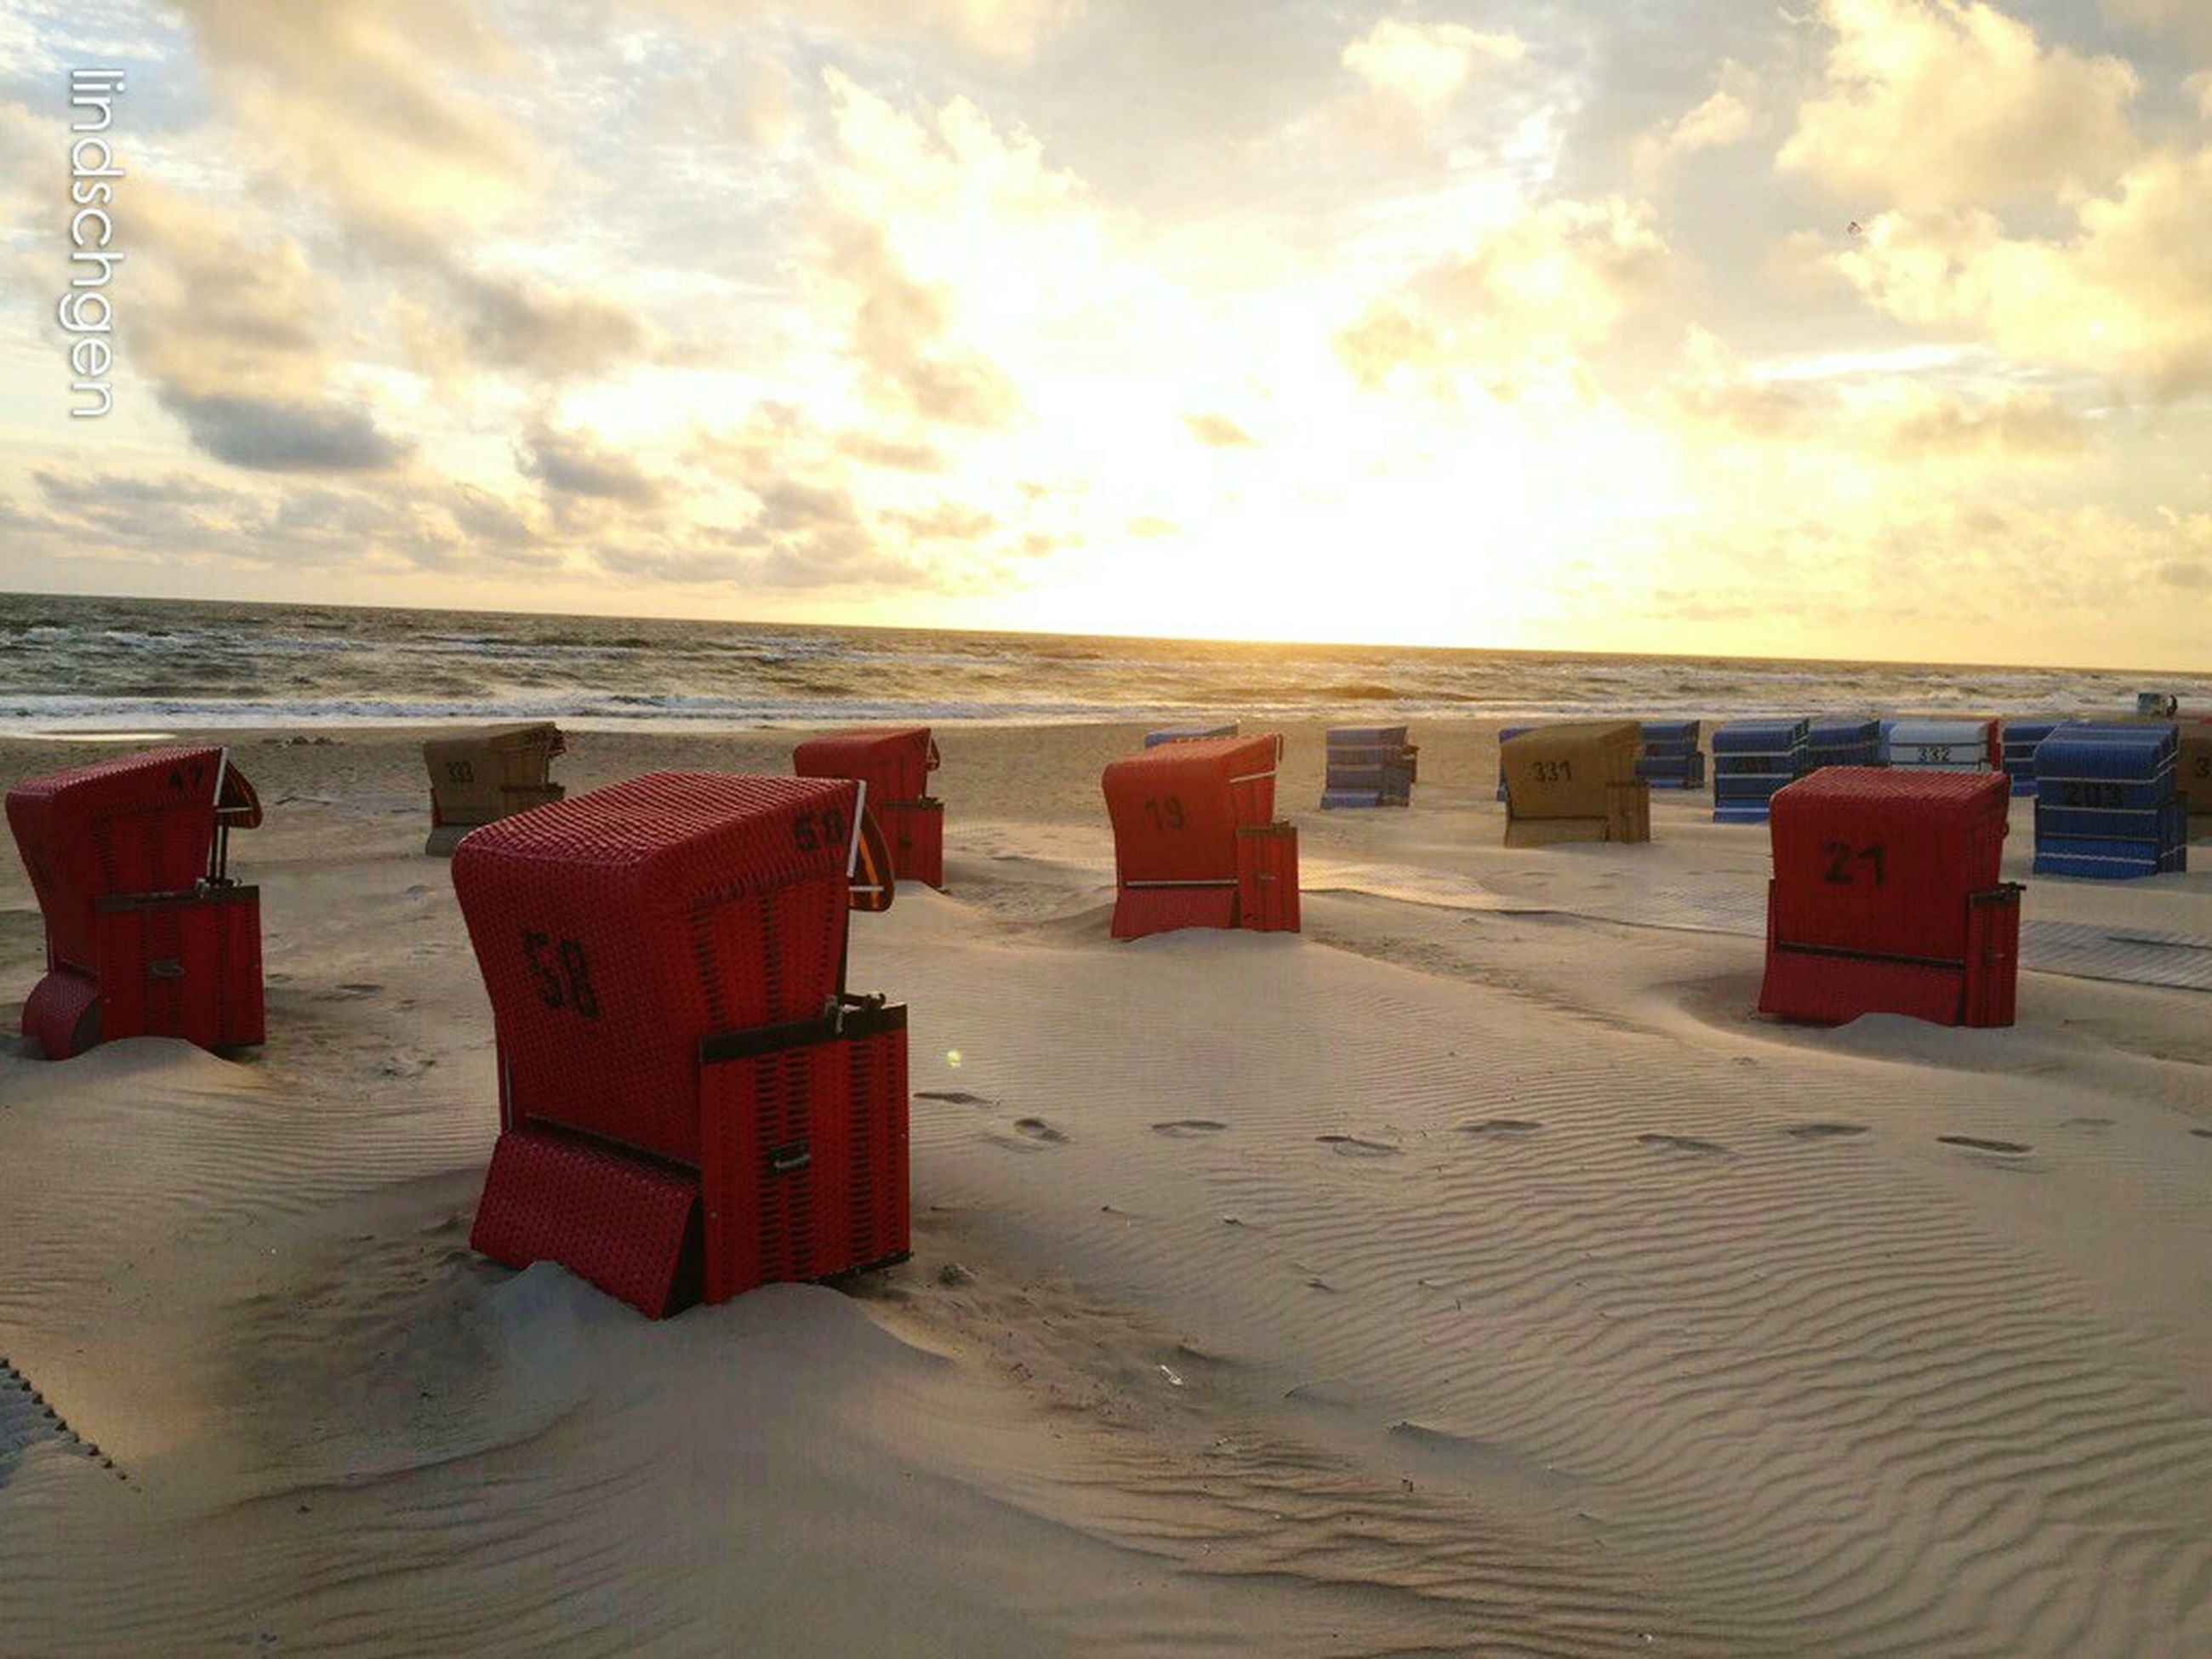 beach, sand, horizon over water, sea, sunset, hooded beach chair, tranquility, sky, tranquil scene, scenics, water, cloud, beauty in nature, cloud - sky, shore, nature, sandy, majestic, outdoors, non-urban scene, vacations, calm, boardwalk, coastline